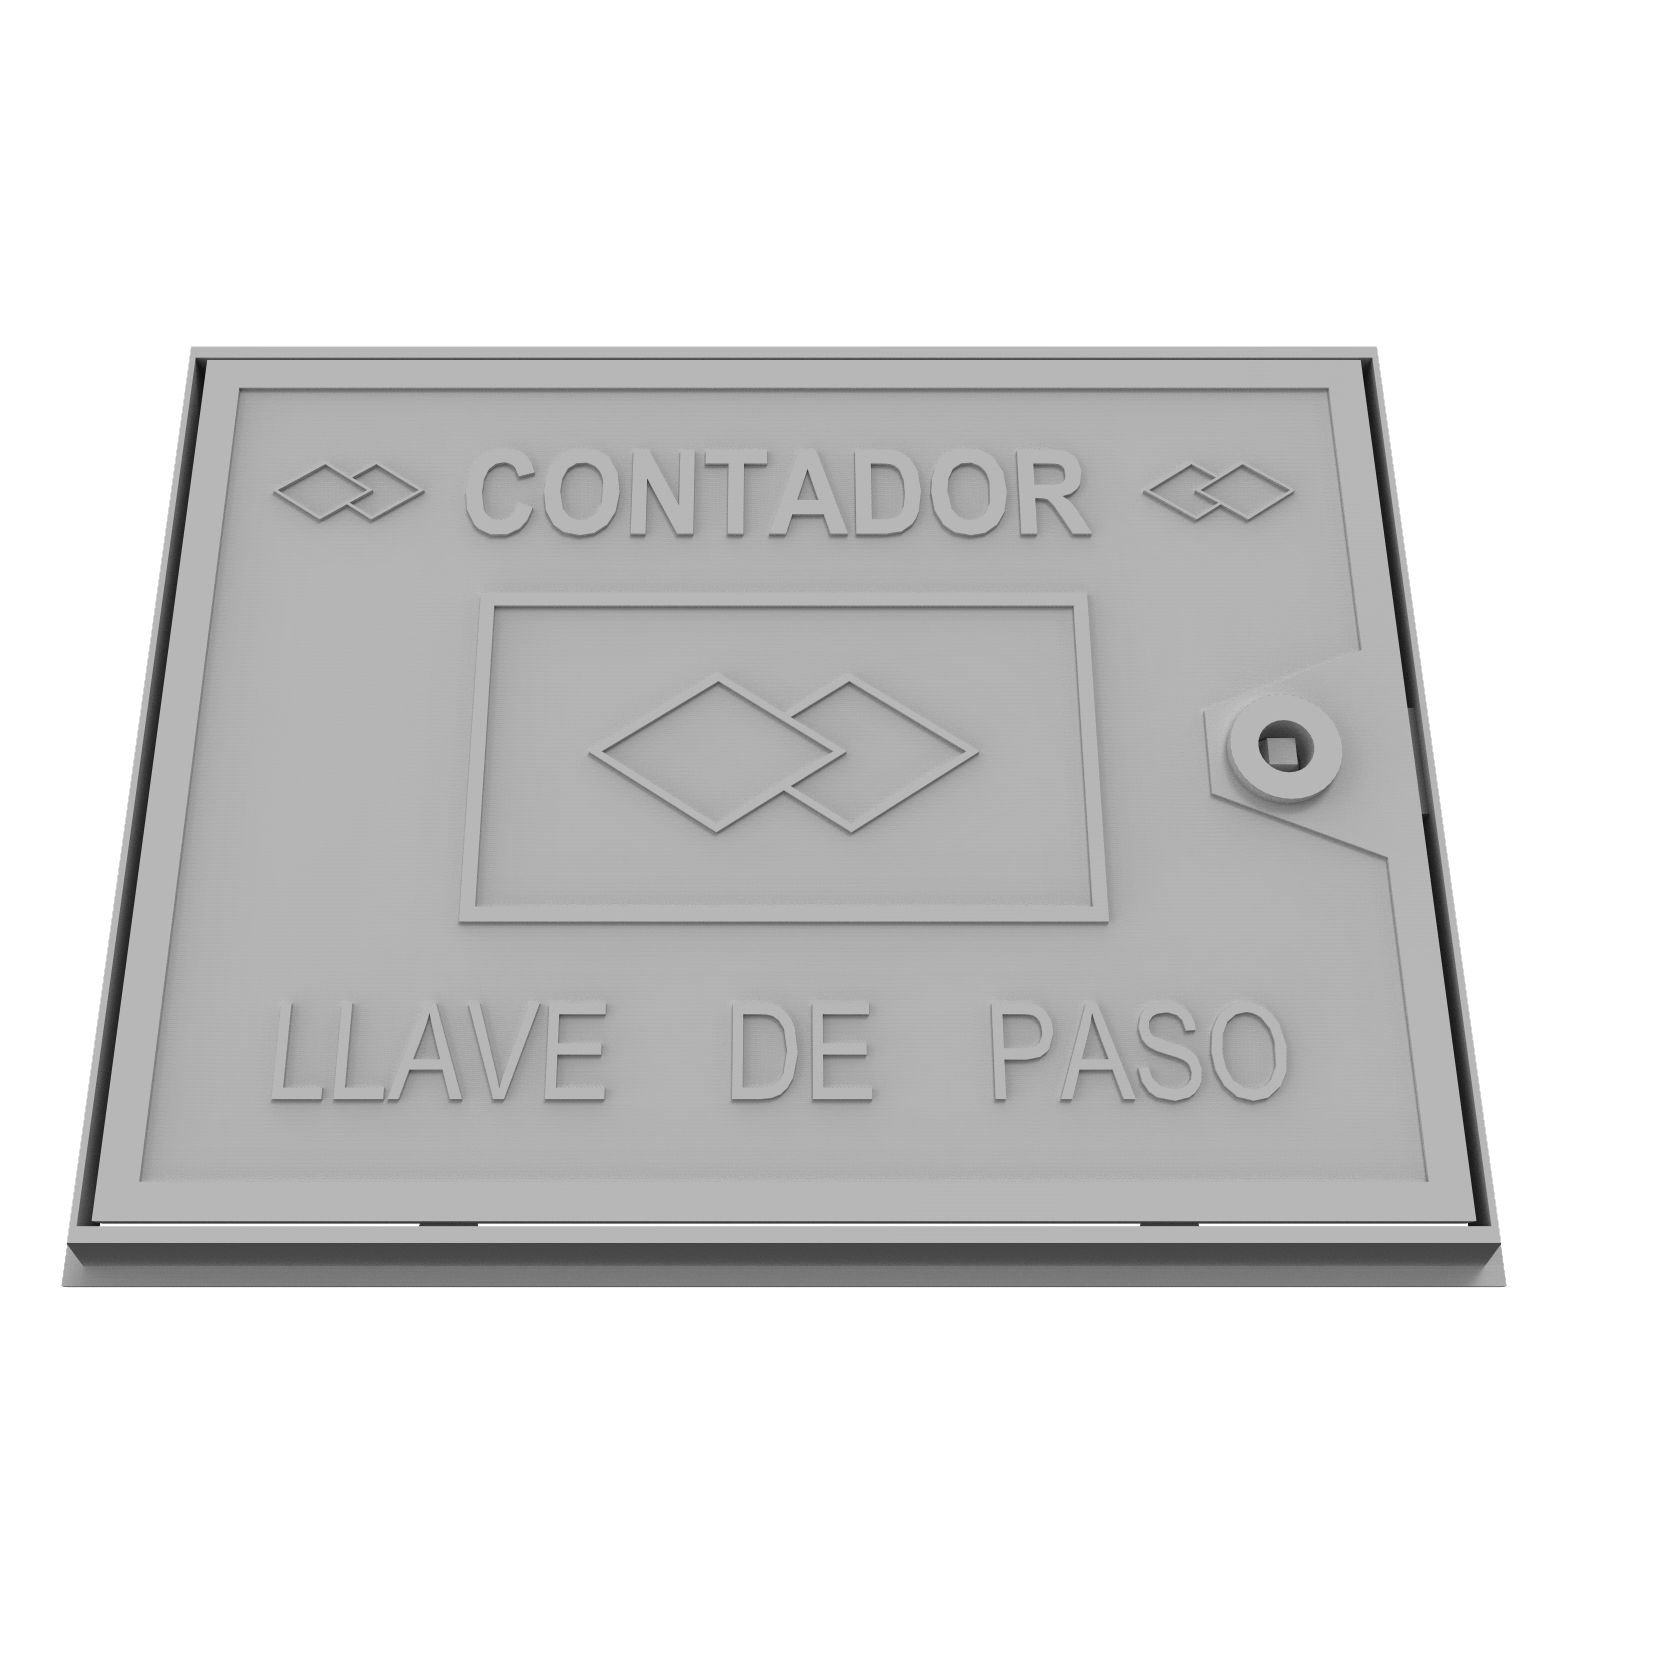 Aluminium wall trap door. Stopcock counter B-41R